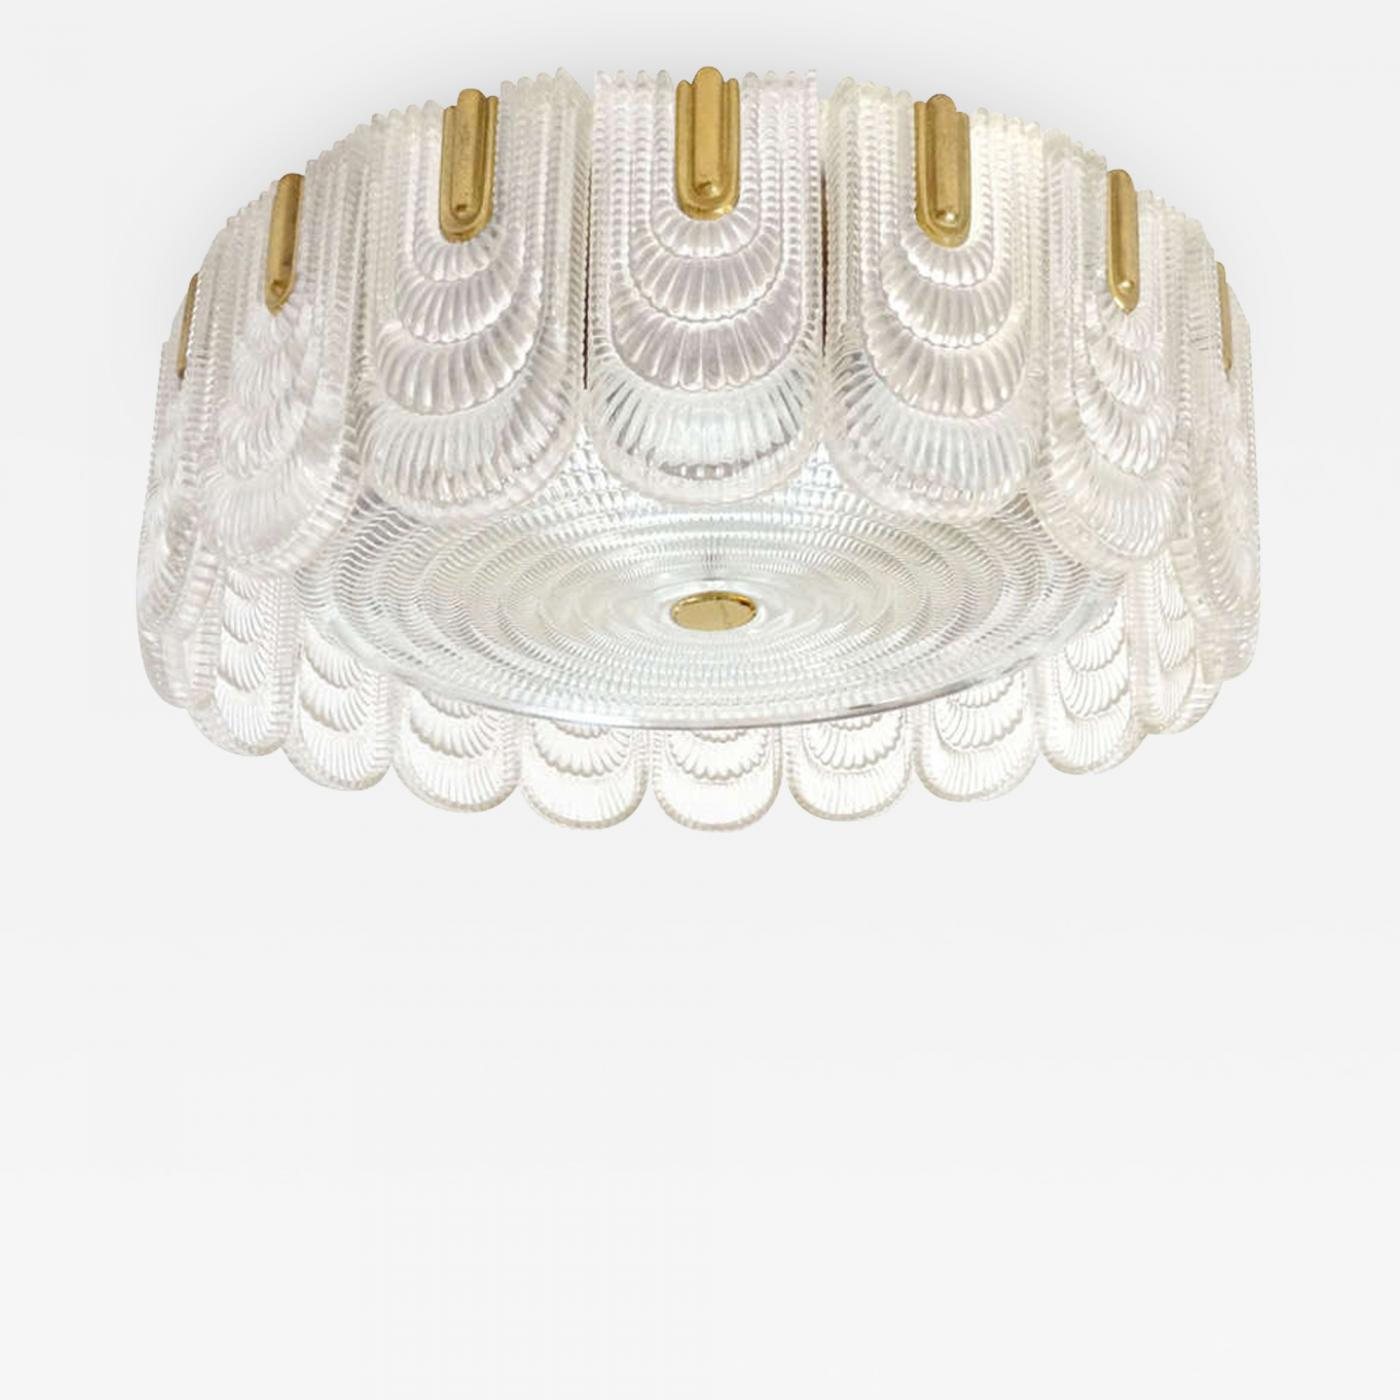 Leuchten Kaiser Kaiser-idell / Kaiser Leuchten /kaiser & Co. - Brass And Glass Light Fixture By Kaiser Leuchten, Germany, C. 1940s